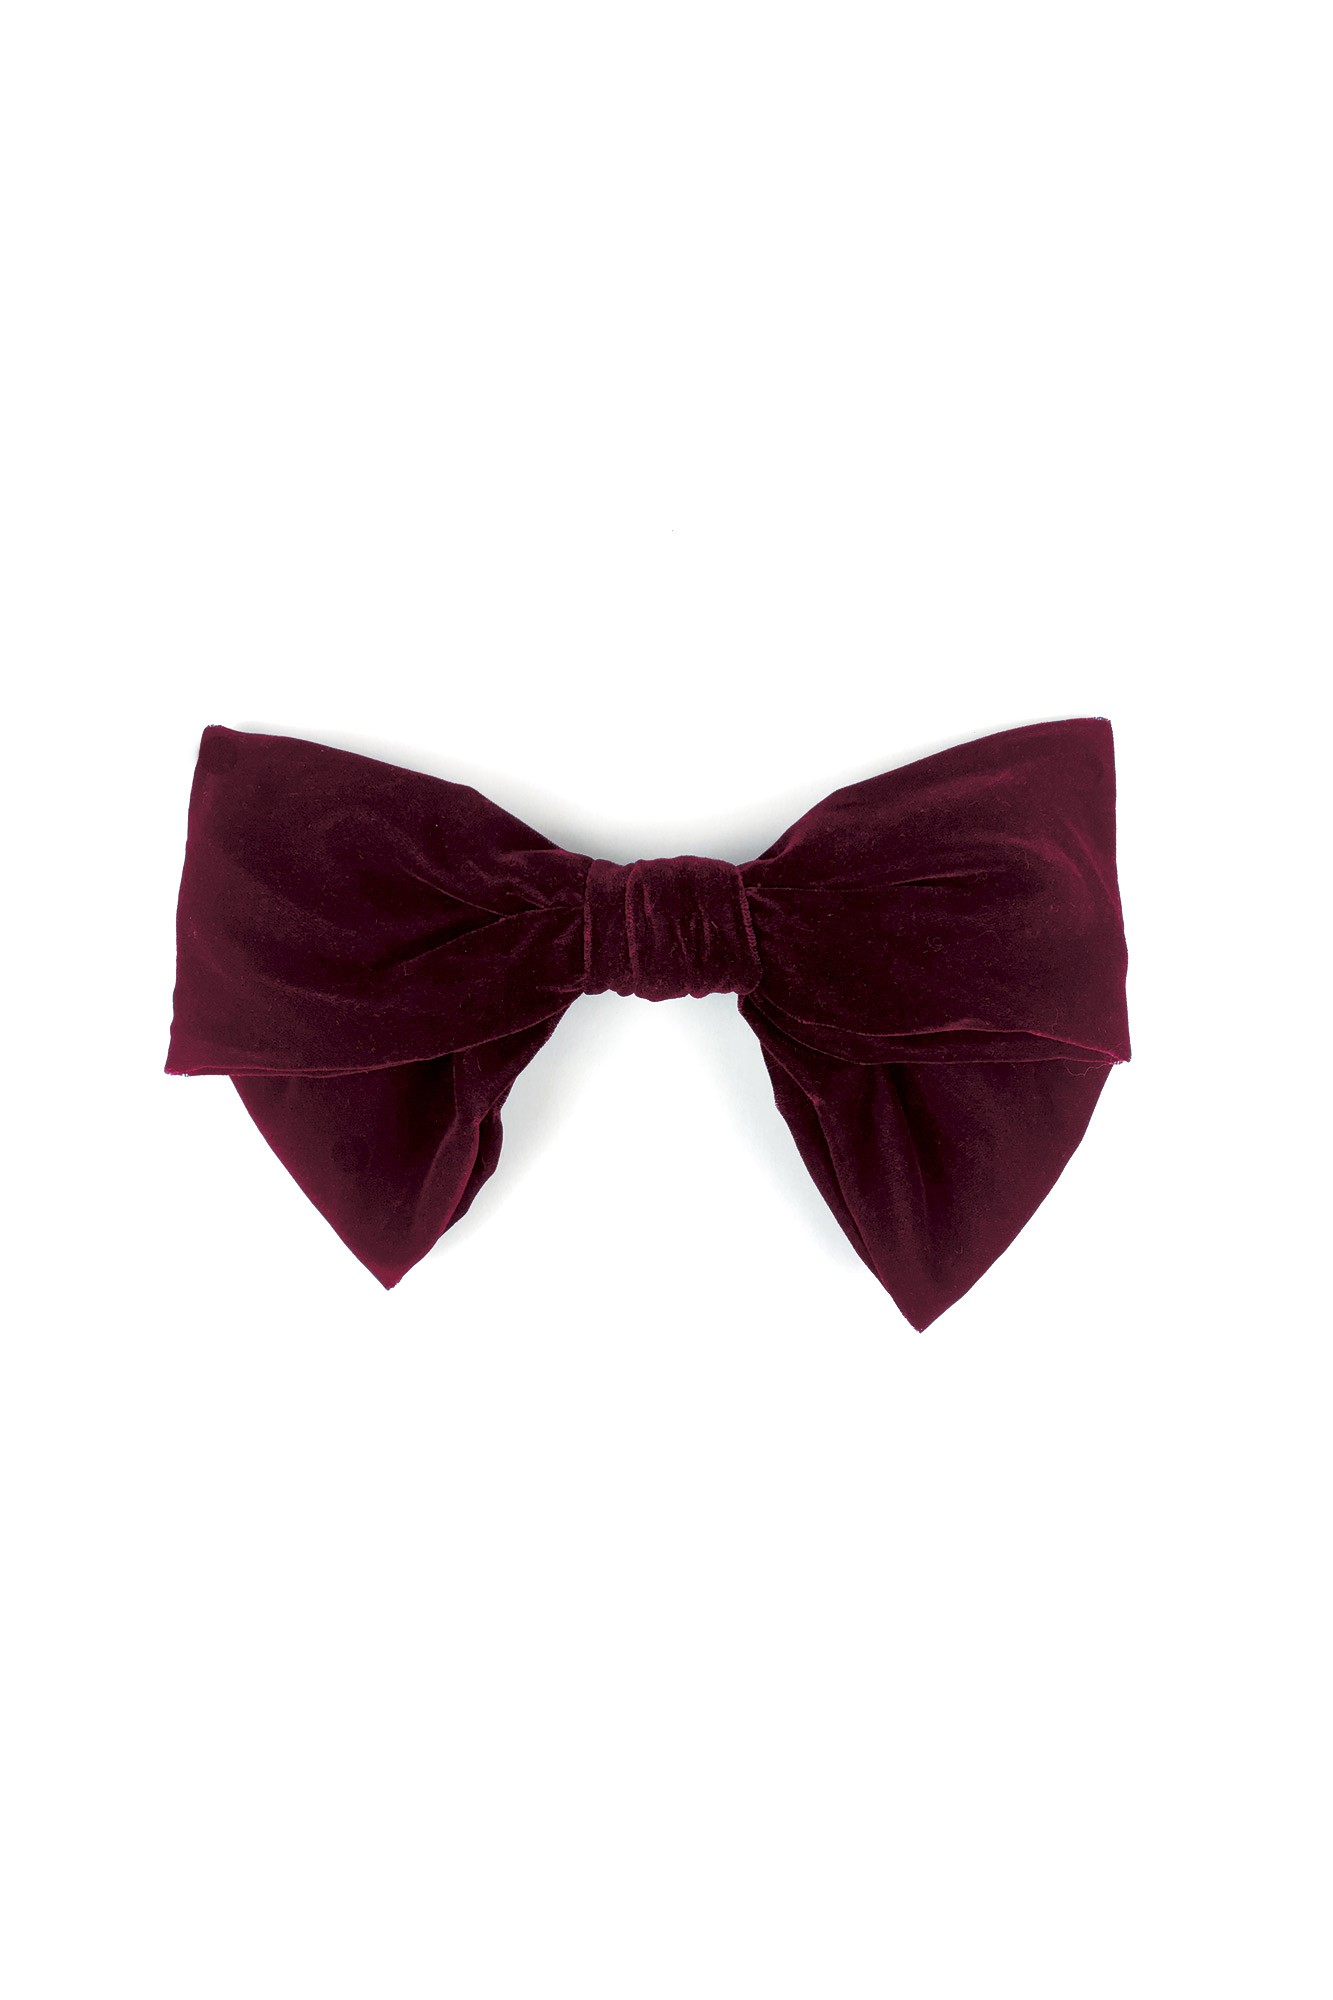 AIKO BURGUNDY BOW